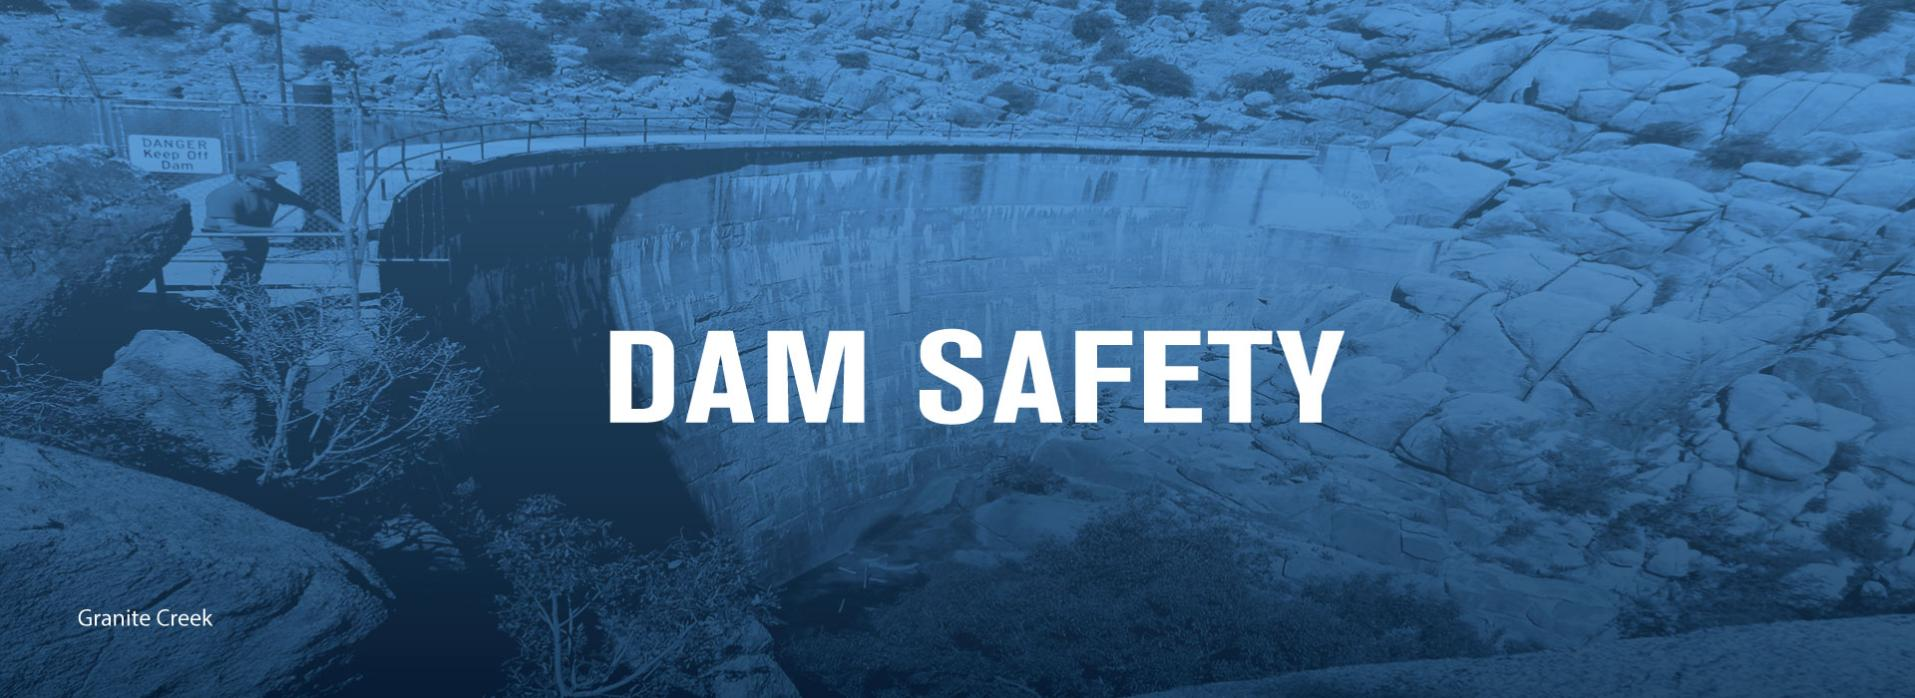 application of dam safety guidelines to mining dams